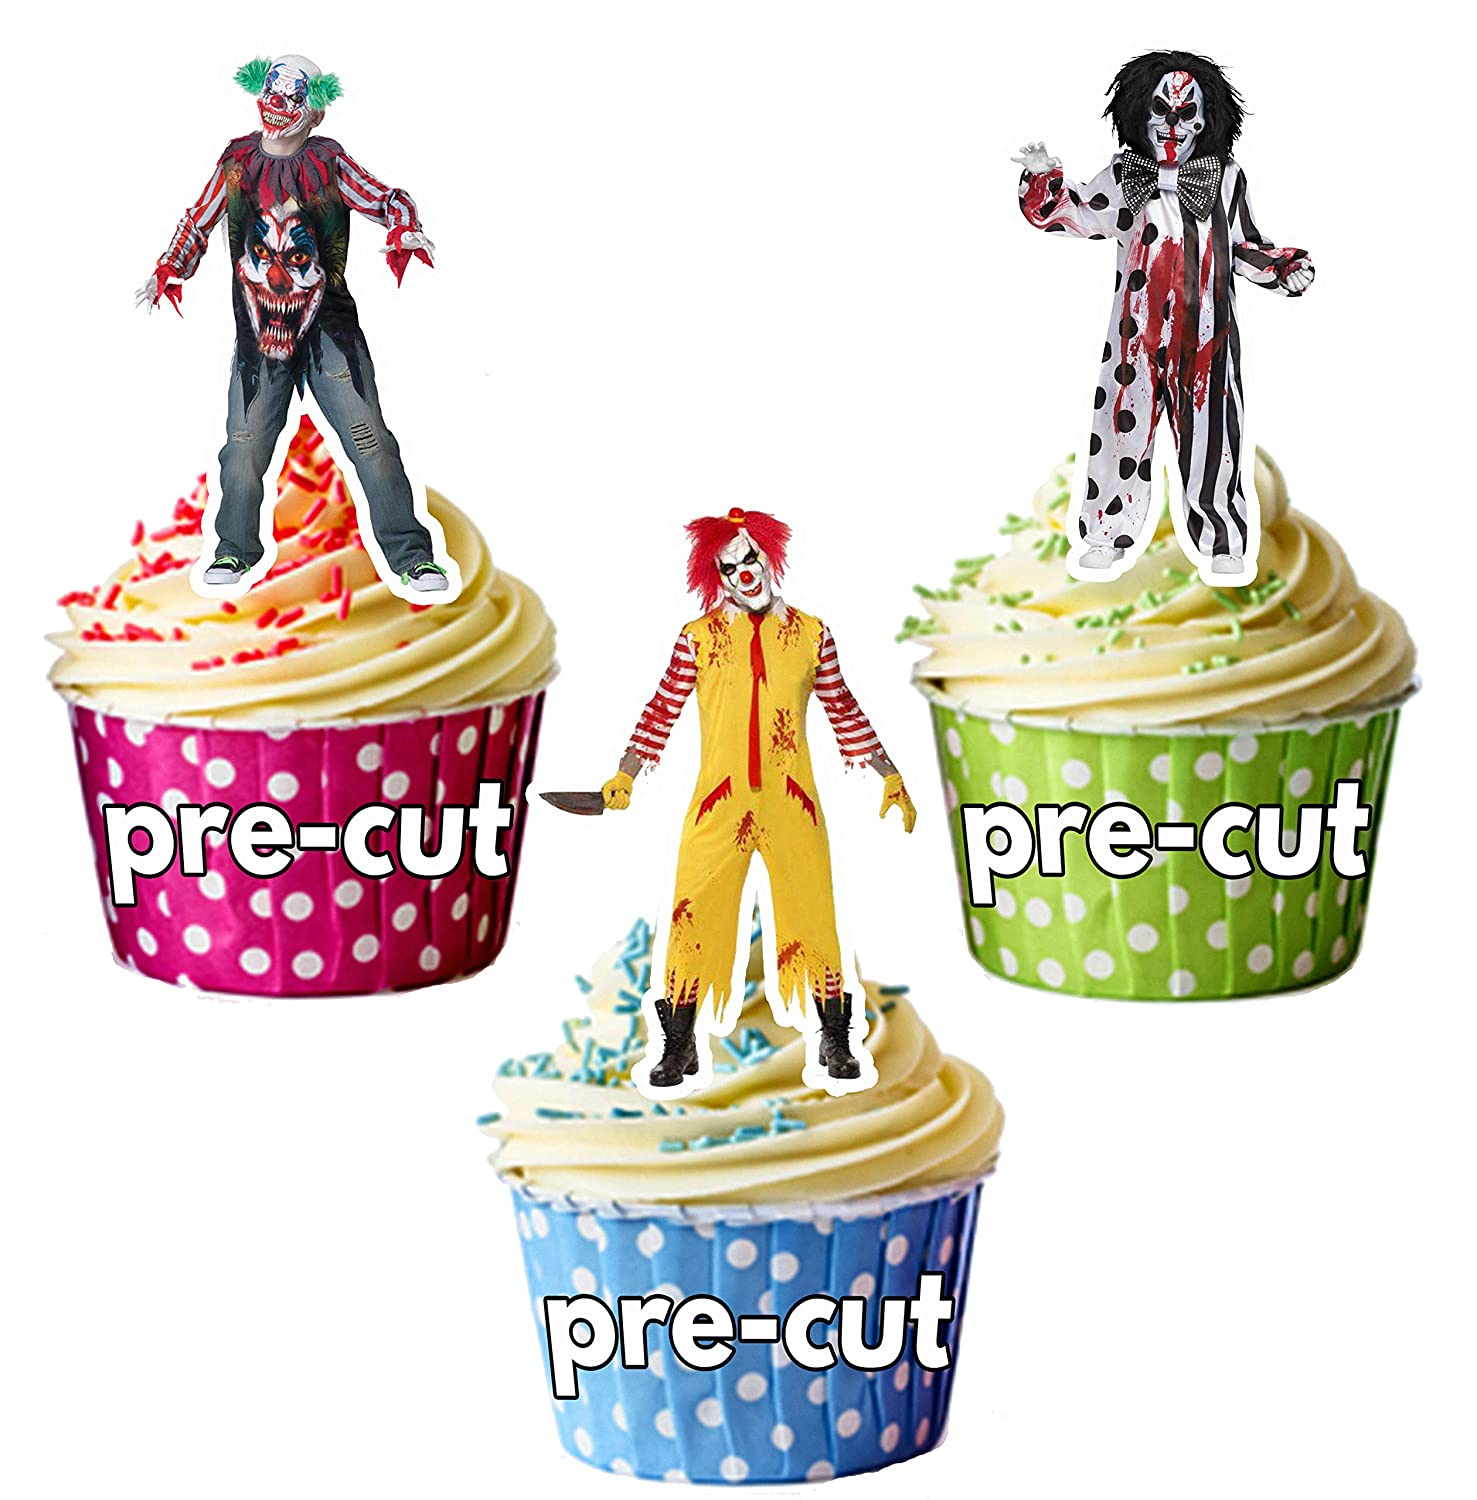 PRE-CUT Halloween Evil Clown Party Pack Edible Cupcake Toppers/Cake Decorations (Pack of 36) AK Giftshop Ltd